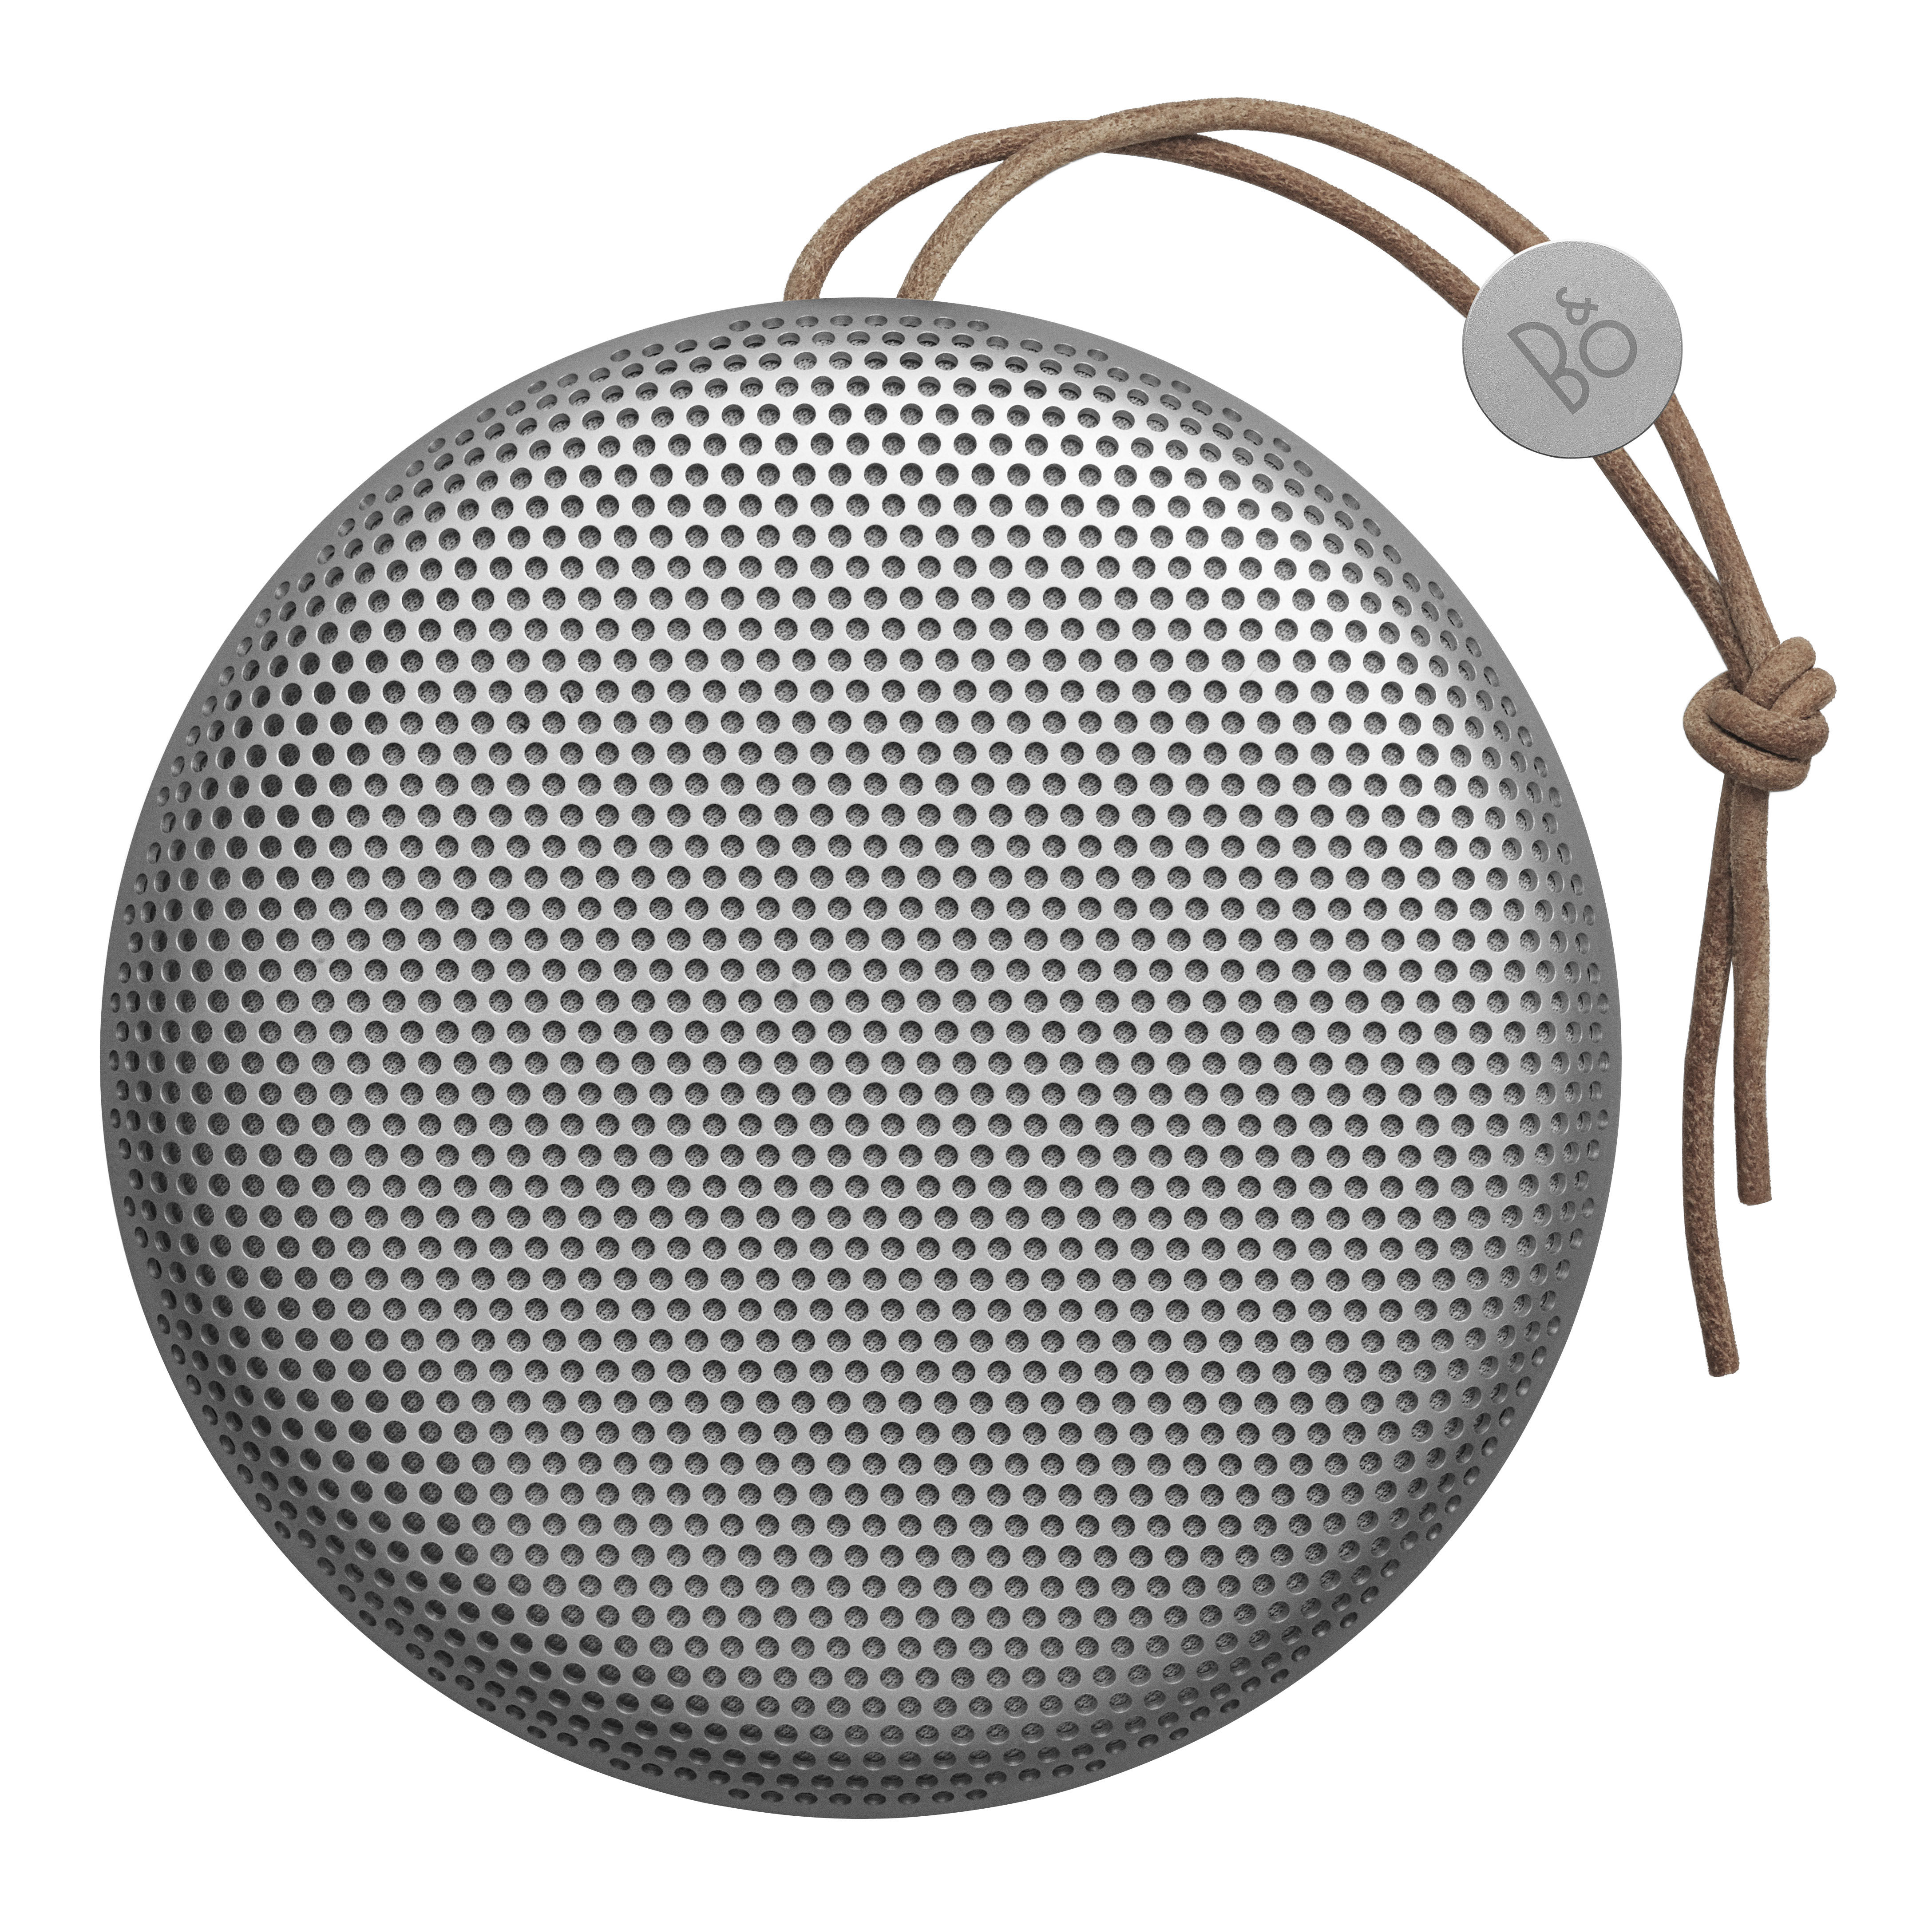 Product selections - Sélection MAISON+ - Beoplay A1 Bluetooth speaker - Bluetooth - Leather handle by B&O PLAY by Bang & Olufsen - Grey - Aluminium, Leather